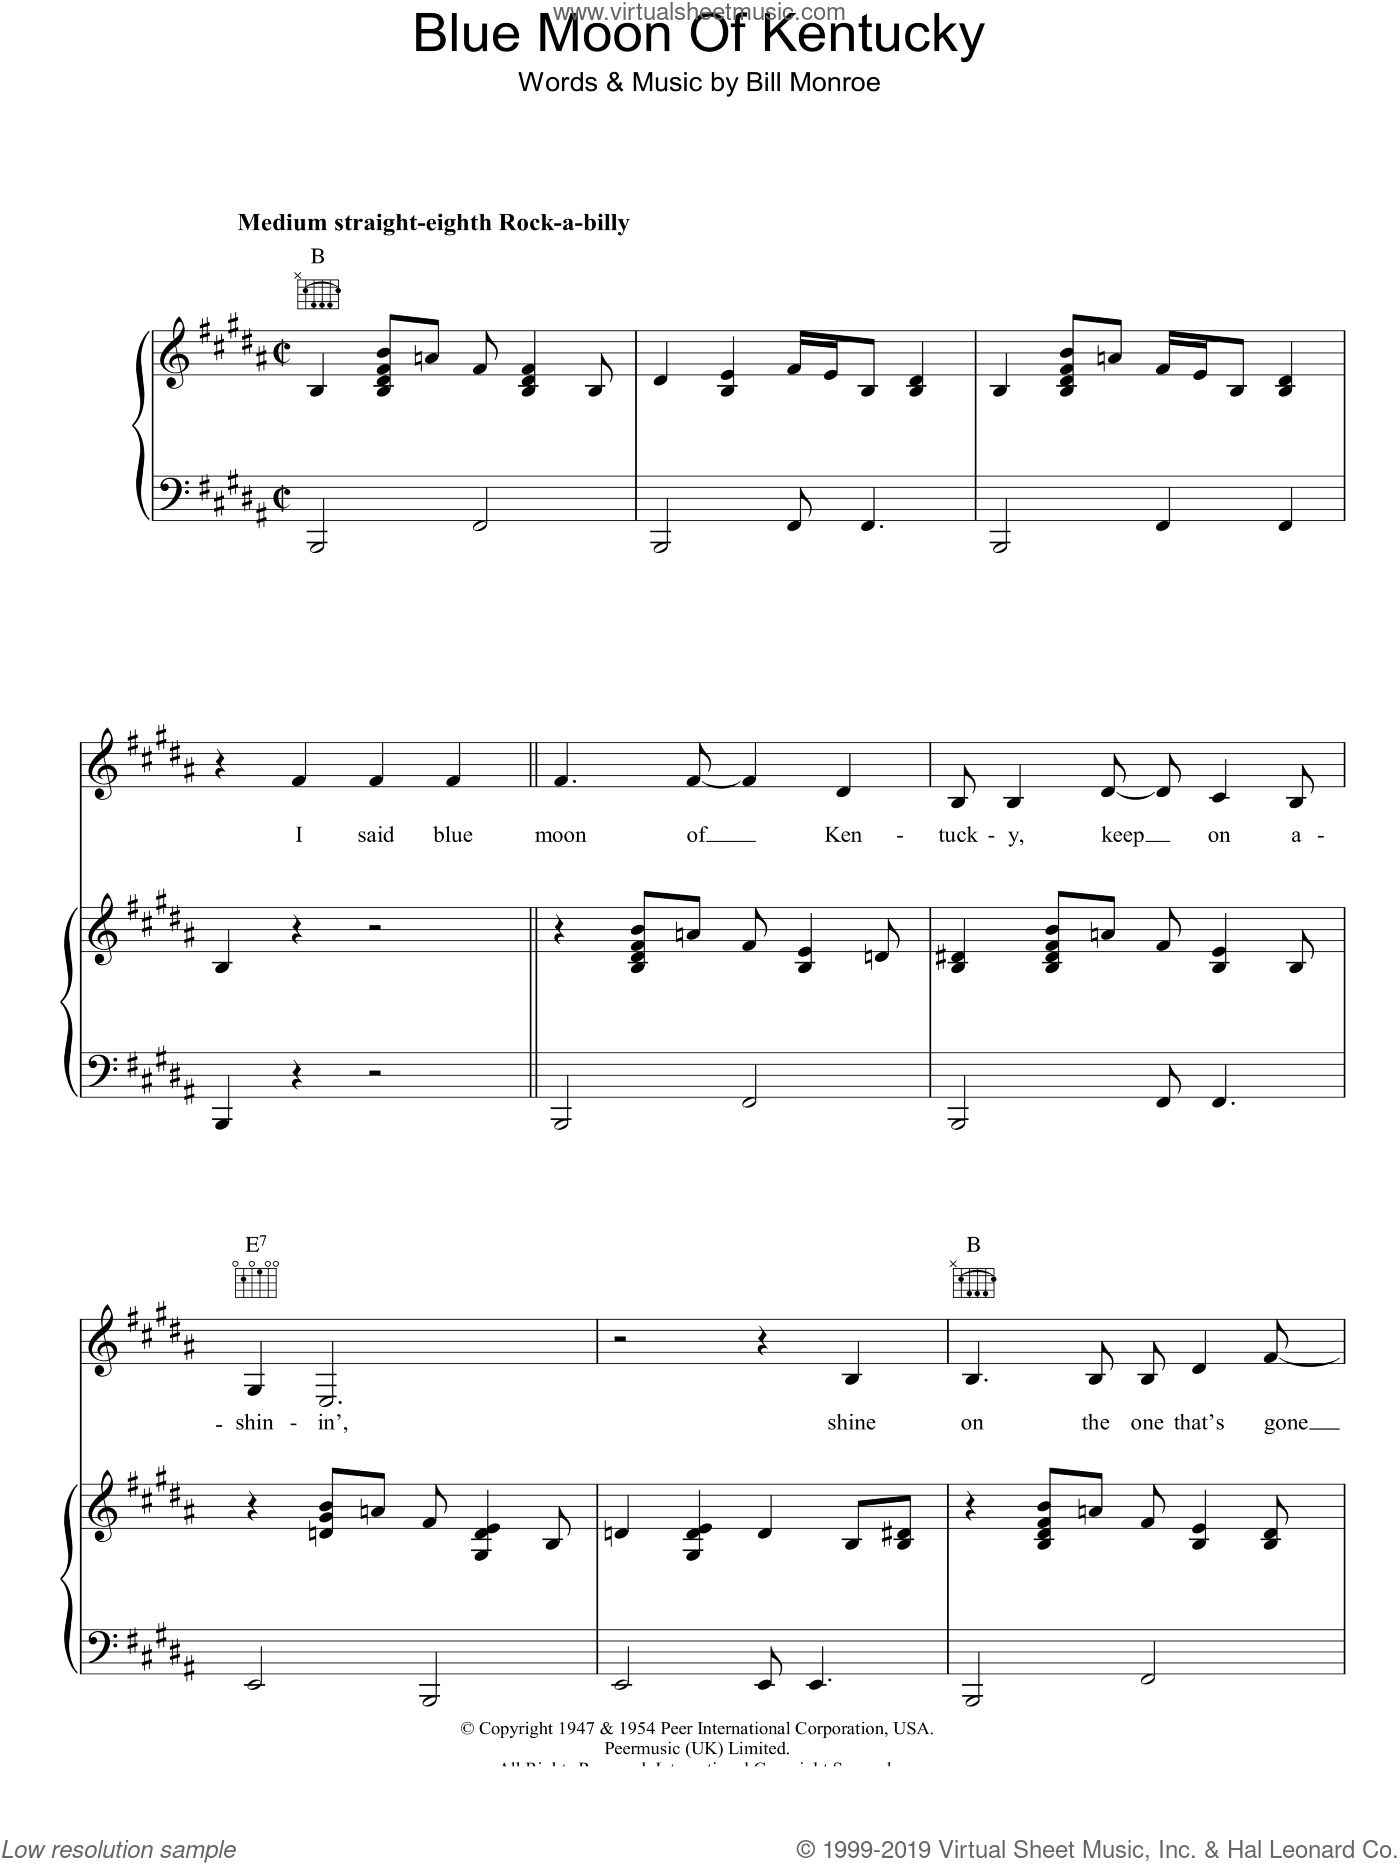 Blue Moon Of Kentucky sheet music for voice, piano or guitar by Bill Monroe and Elvis Presley, intermediate skill level